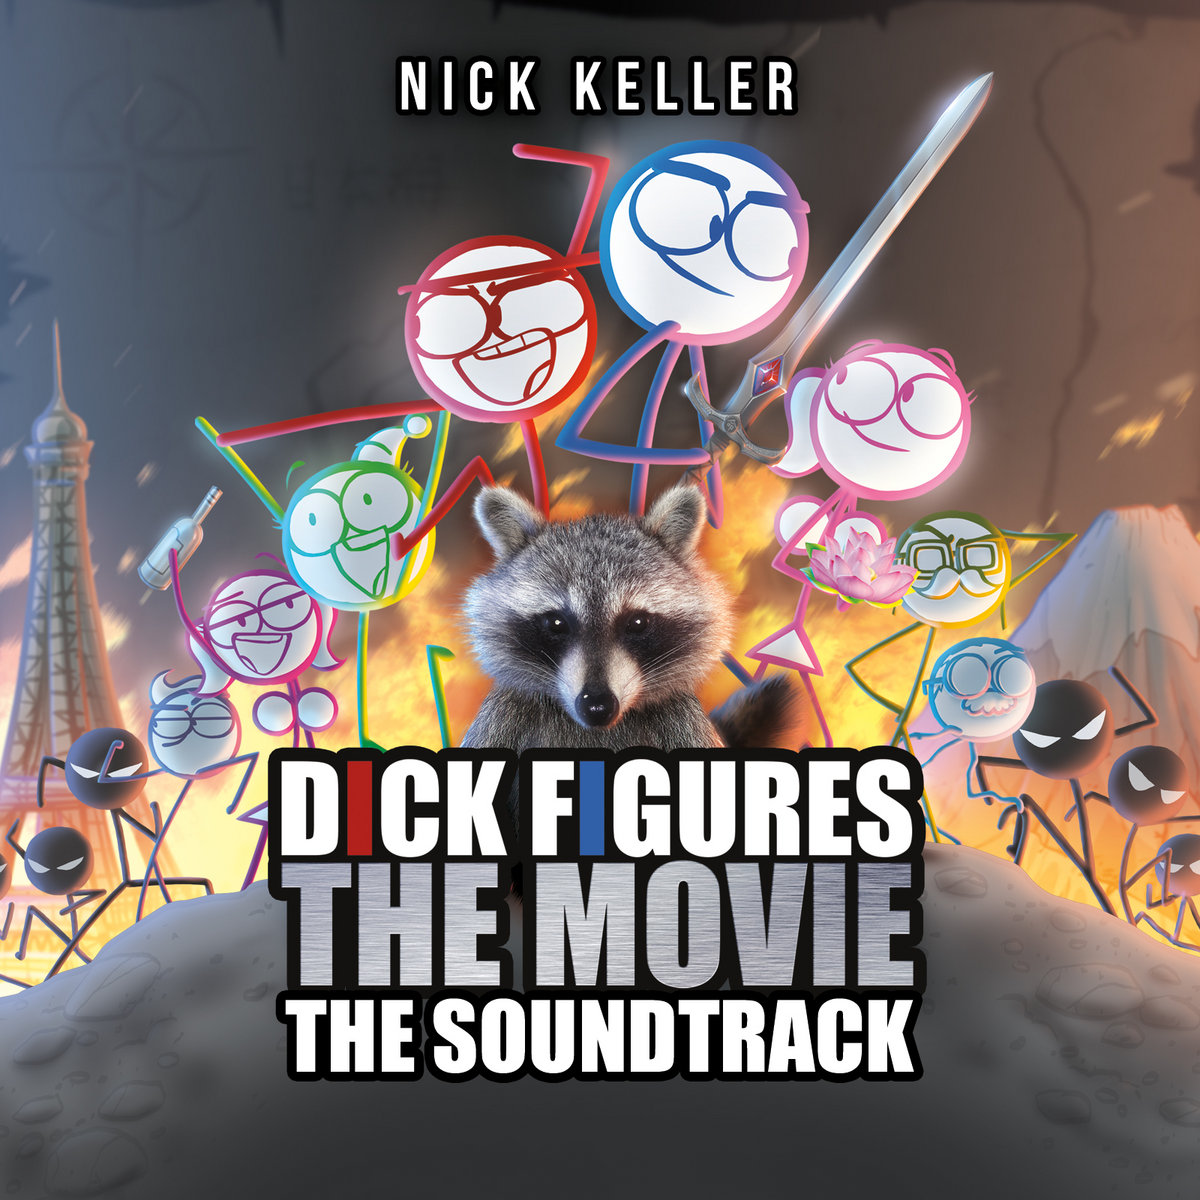 Dick Figures The Movie (Original Motion Picture Soundtrack) | Nick